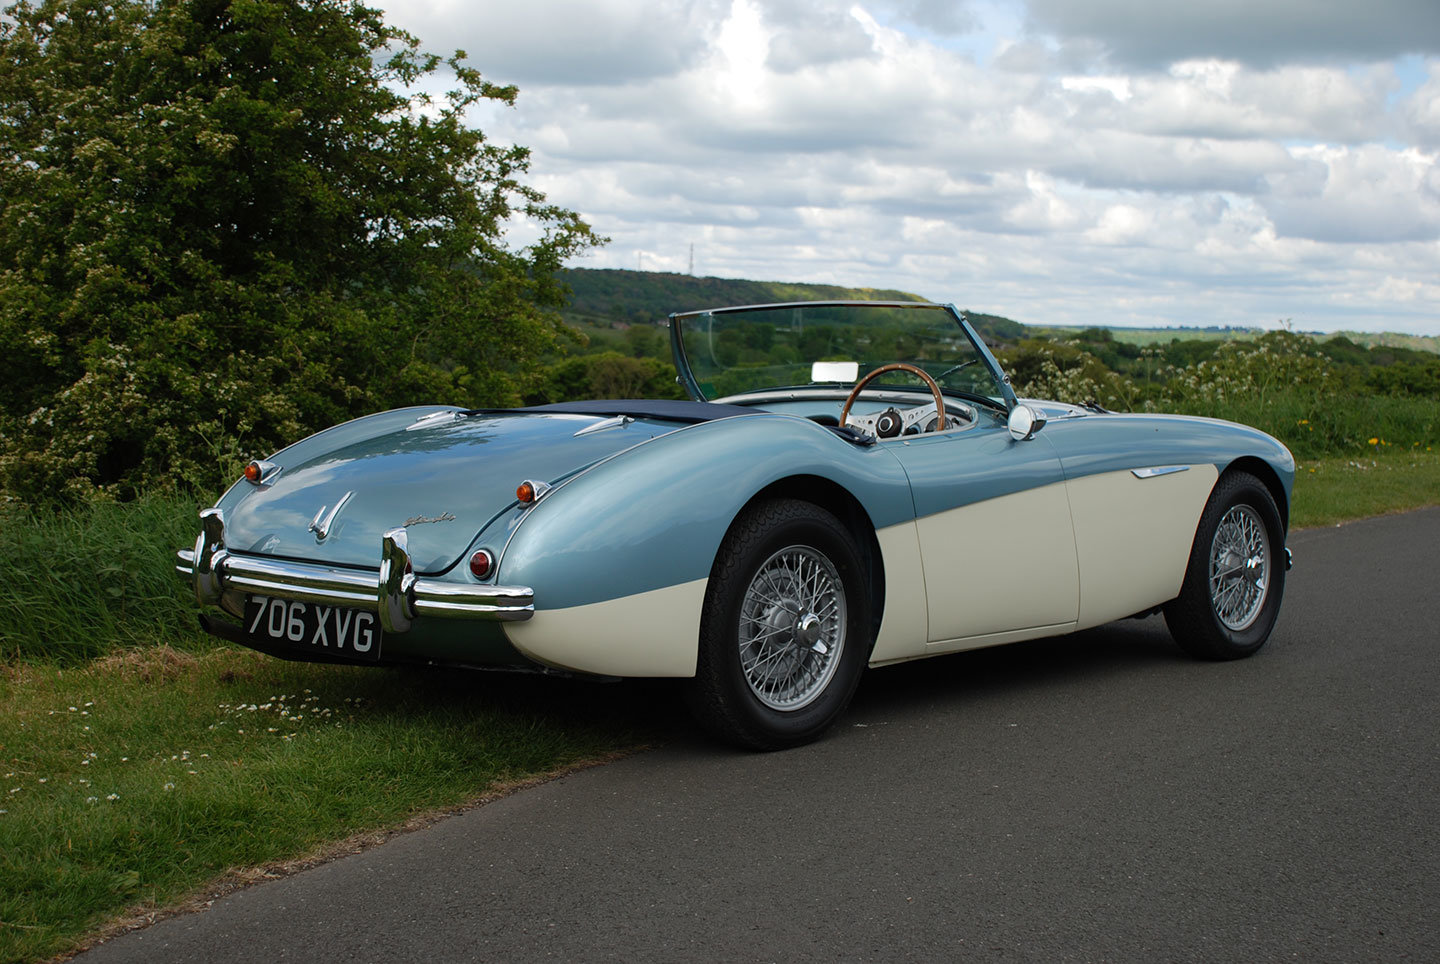 1955 Austin Healey 100/4 BN2 M Specification For Sale (picture 4 of 10)